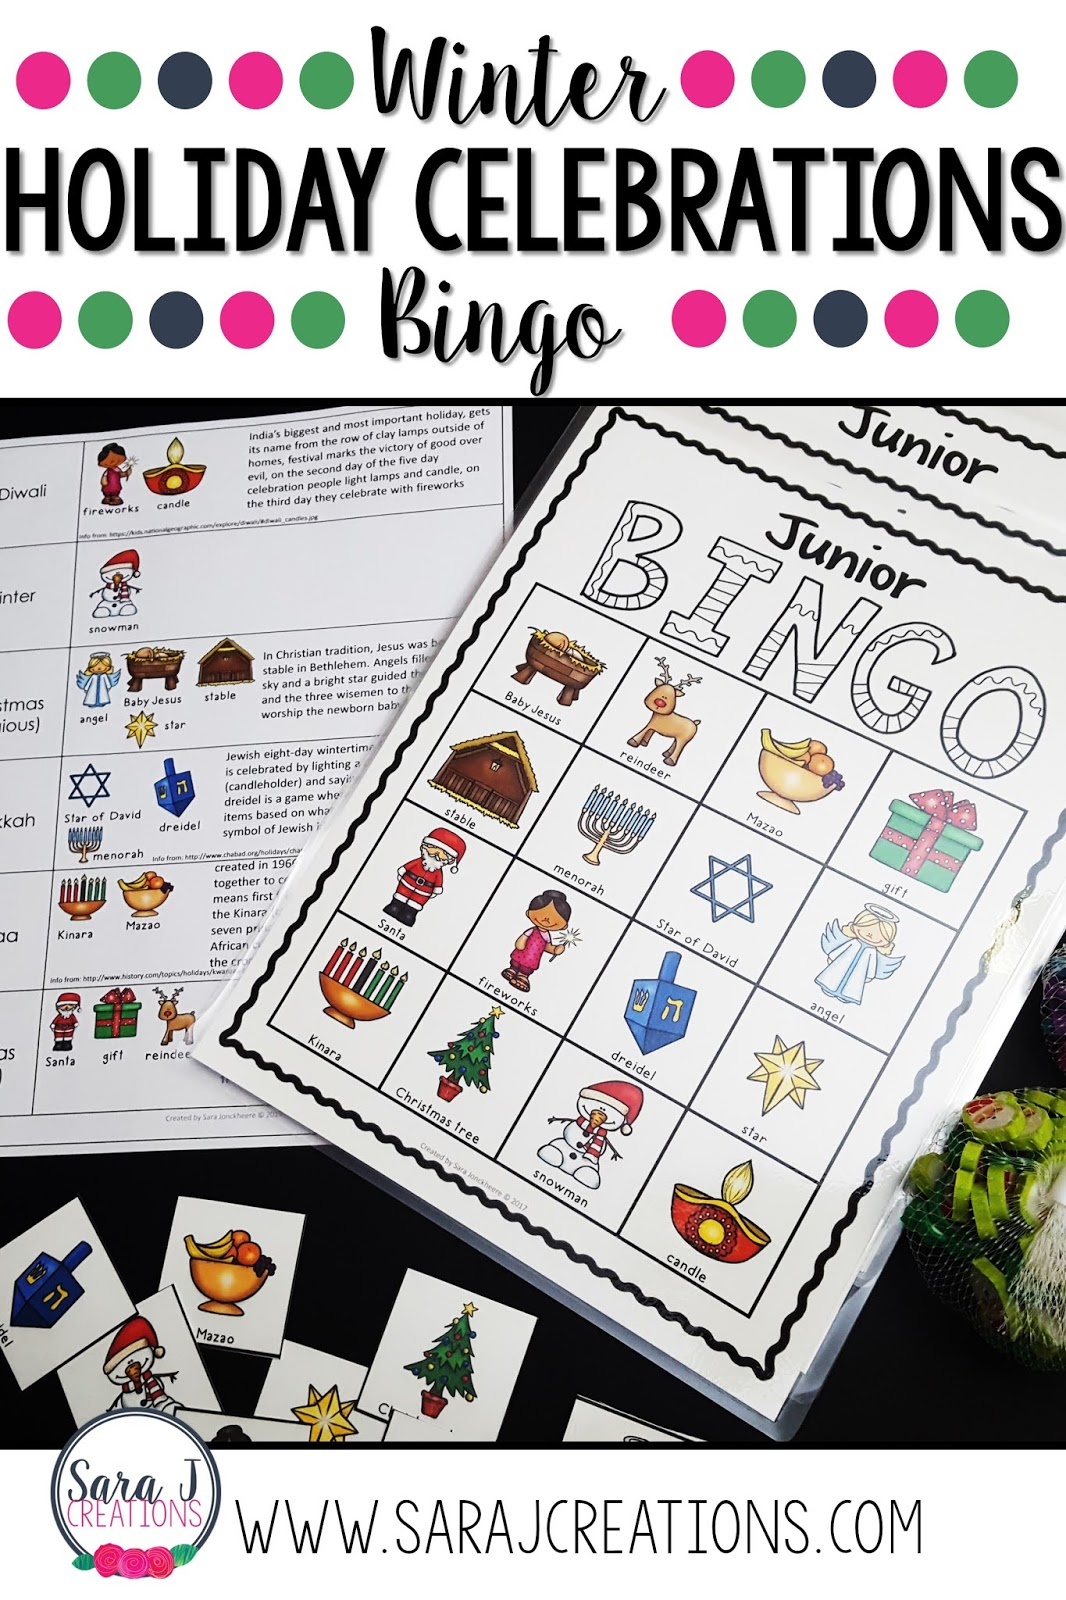 Want bingo to play at a holiday party, but don't want just Christmas Bingo? Check out Winter Holidays bingo and your students can learn about Christmas, Hanukkah, Kwanzaa, Diwali, and winter.